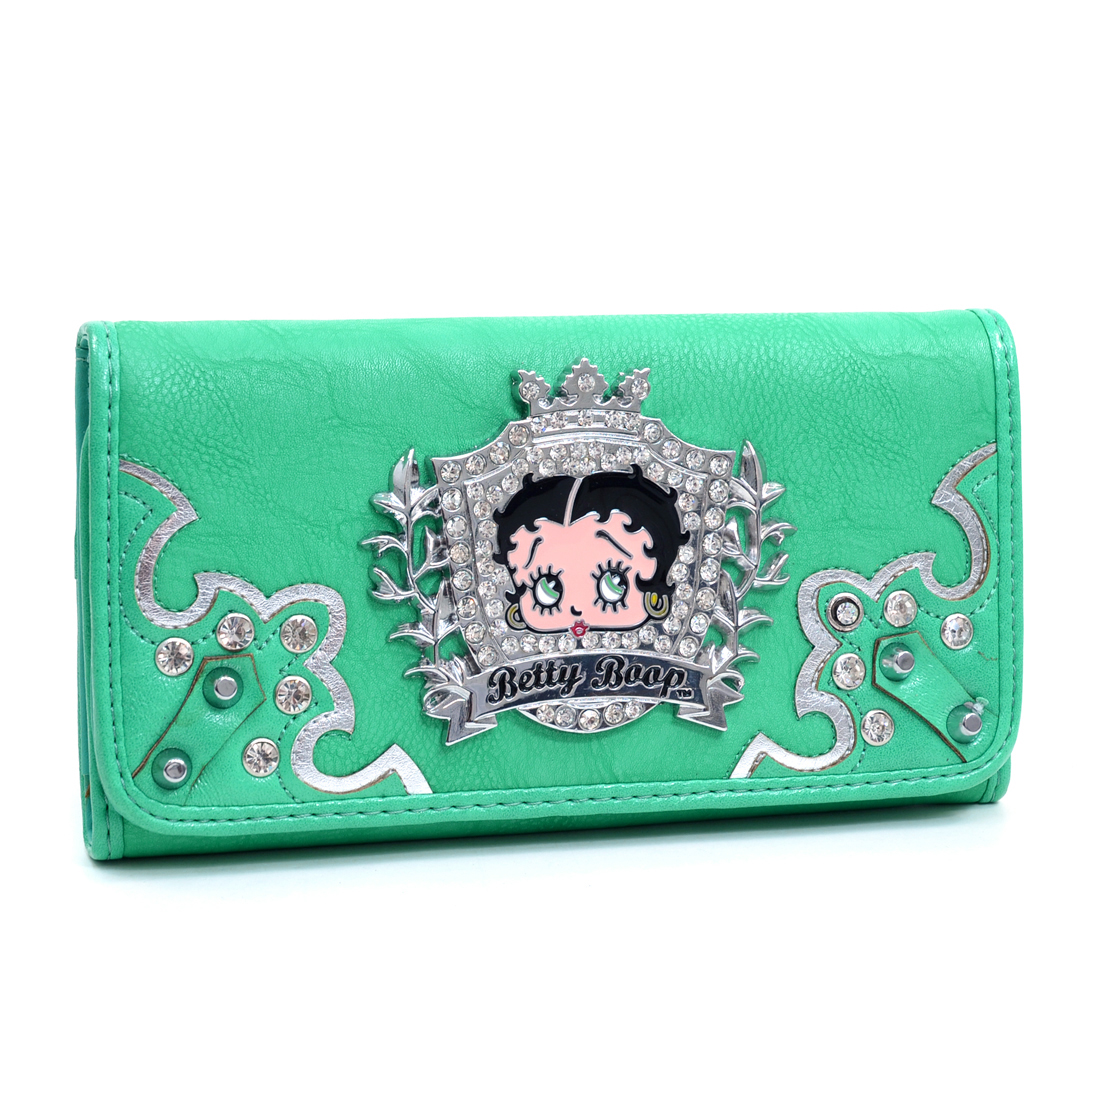 Rhinestone Crest Betty Boop® Checkbook Wallet